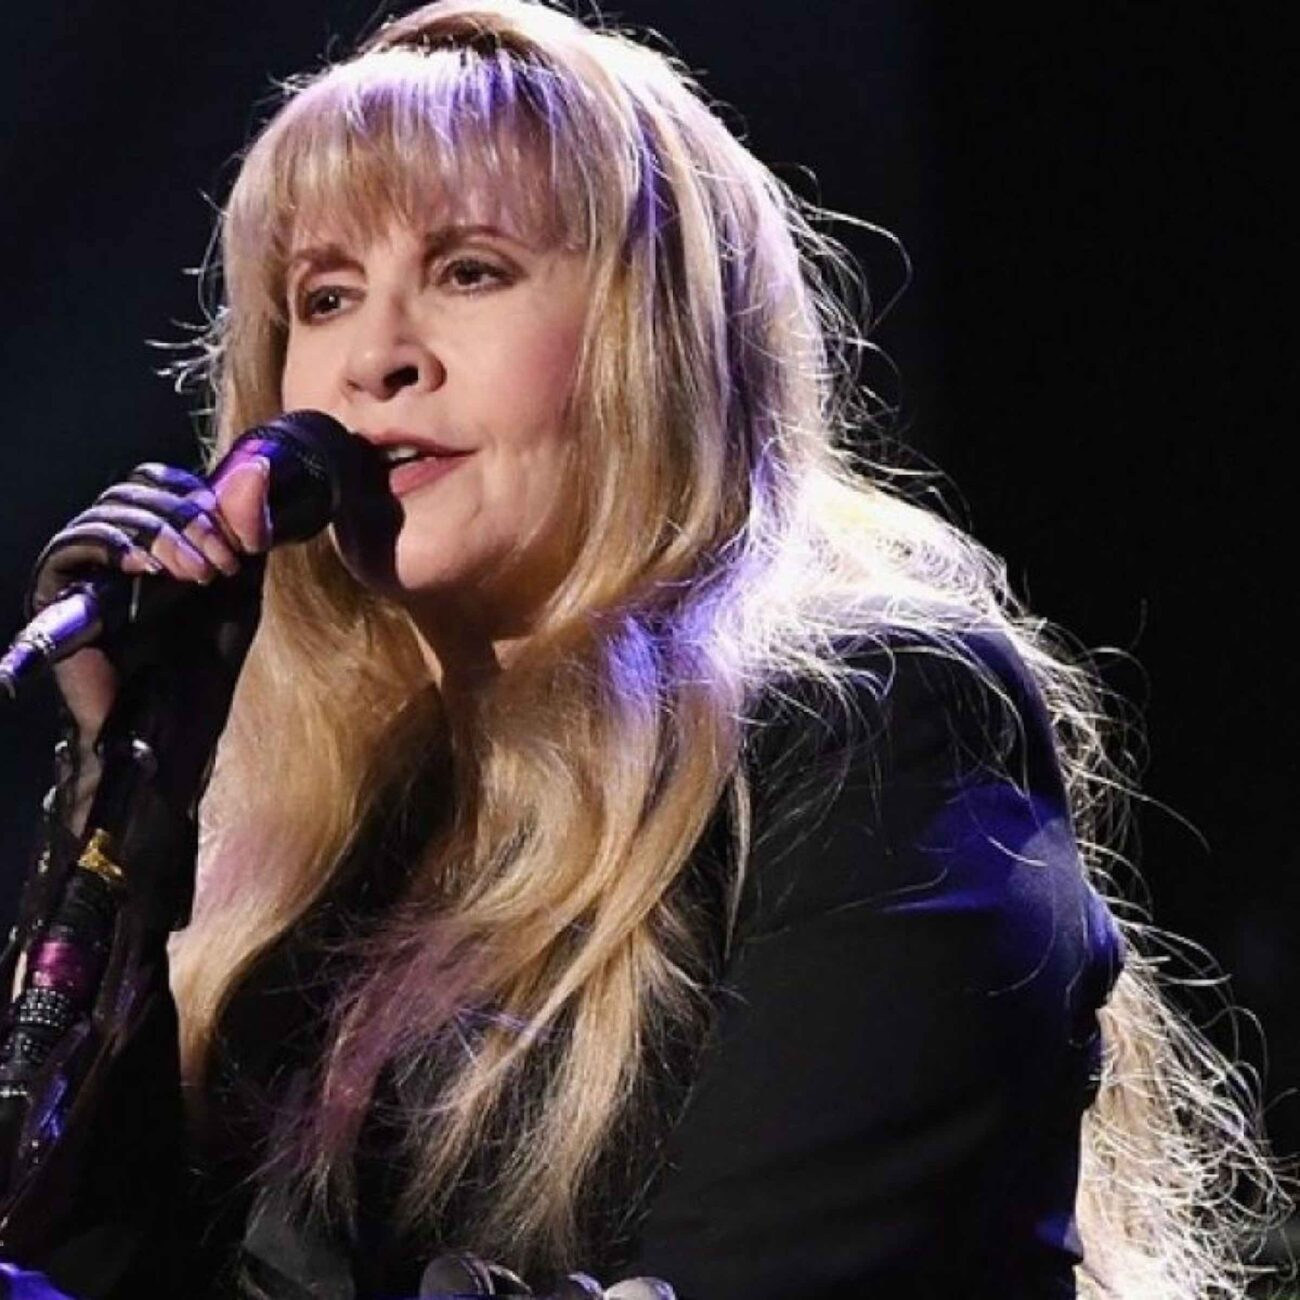 Fleetwood Mac's Stevie Nicks announced that her concerts for 2021 are cancelled. Get ready to retweet and dive into the reactions to the news on Twitter!